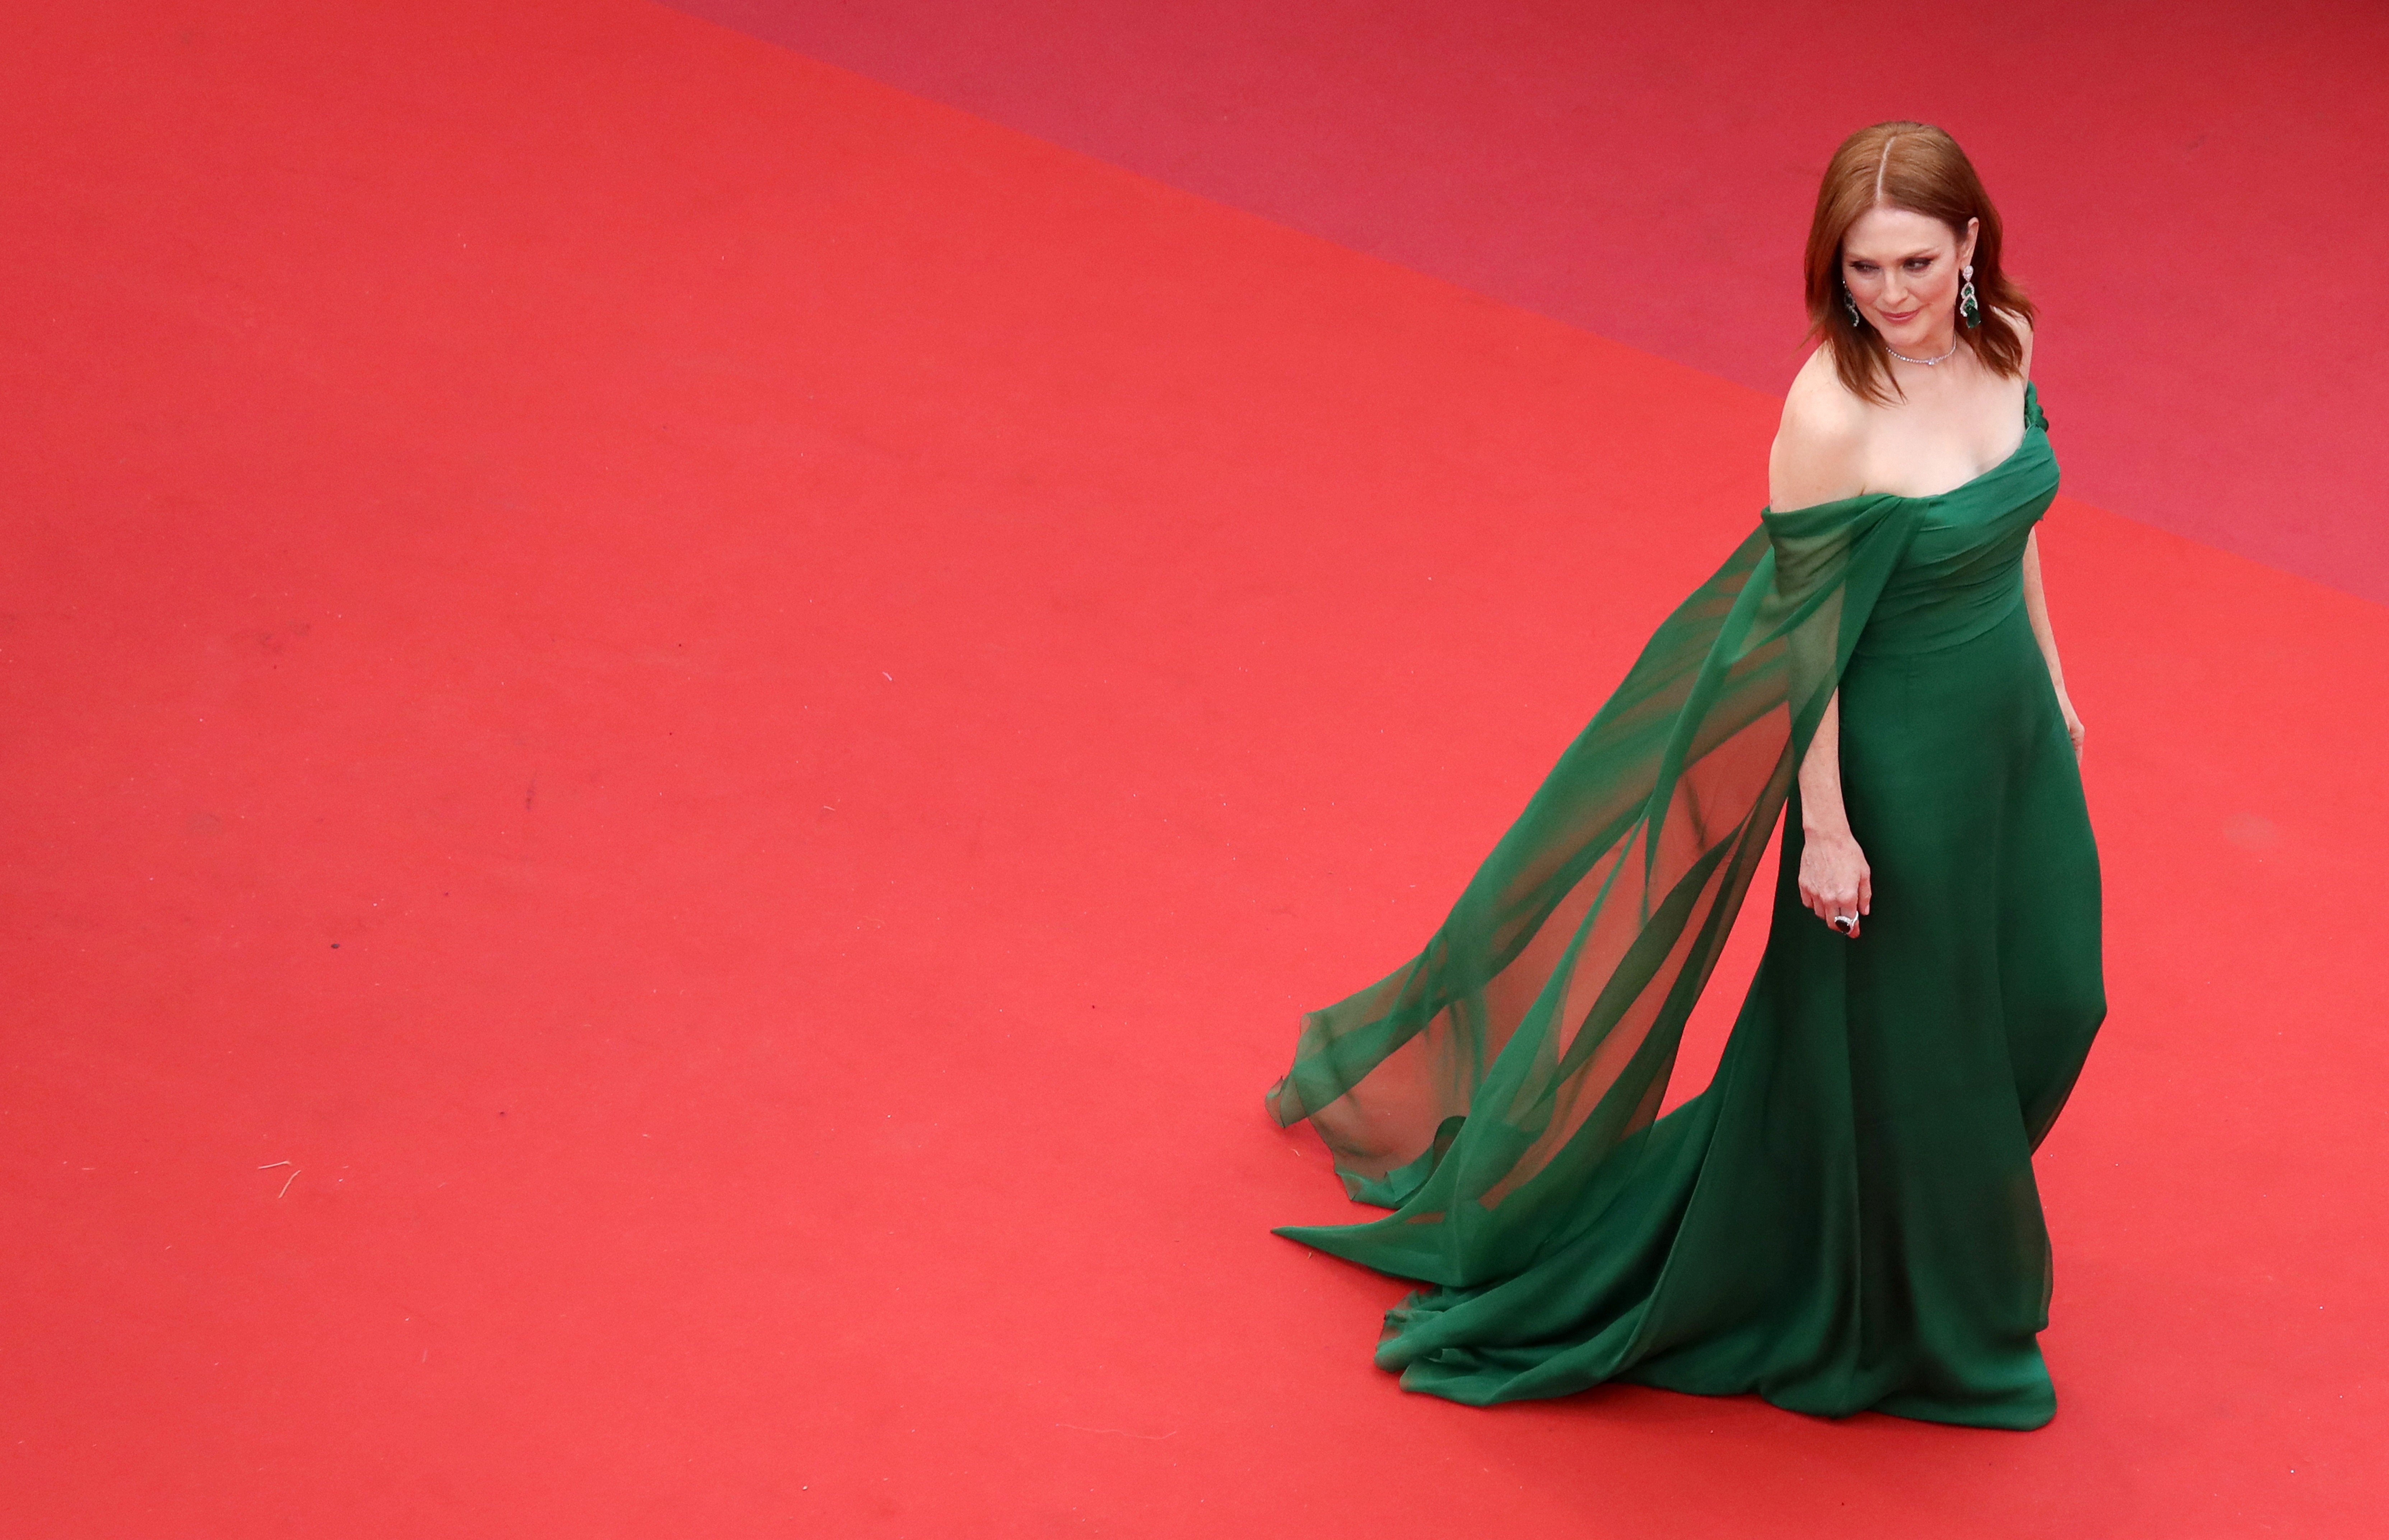 bdd8d40e018 The best red-carpet styles at Cannes Film Festival